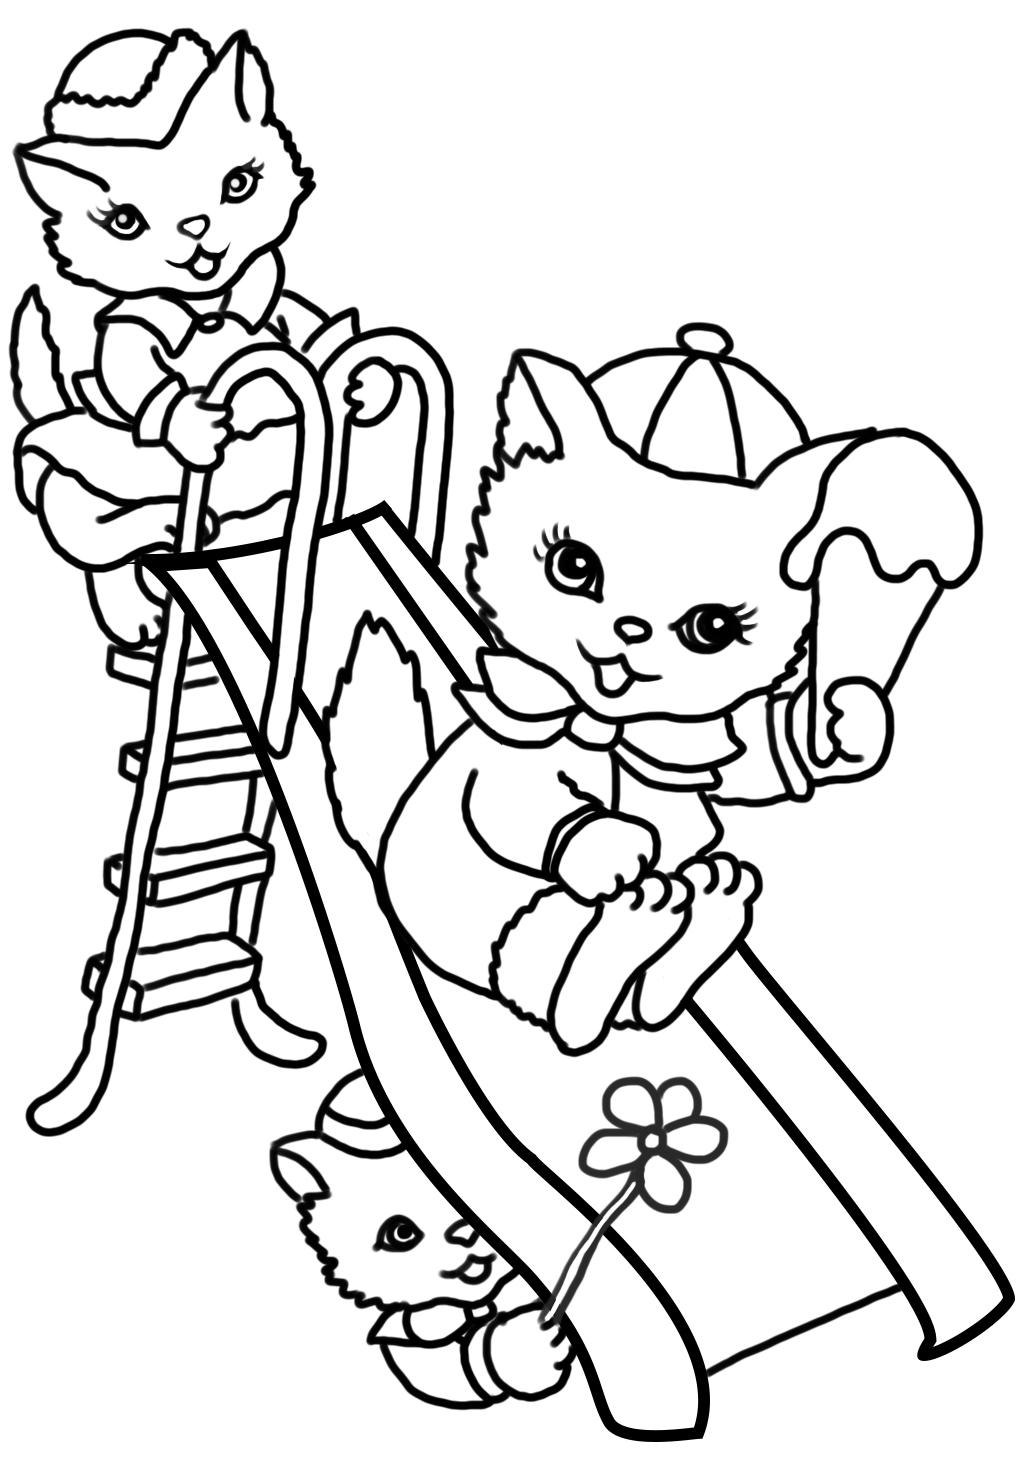 summer coloring pages june coloring pages best coloring pages for kids pages coloring summer